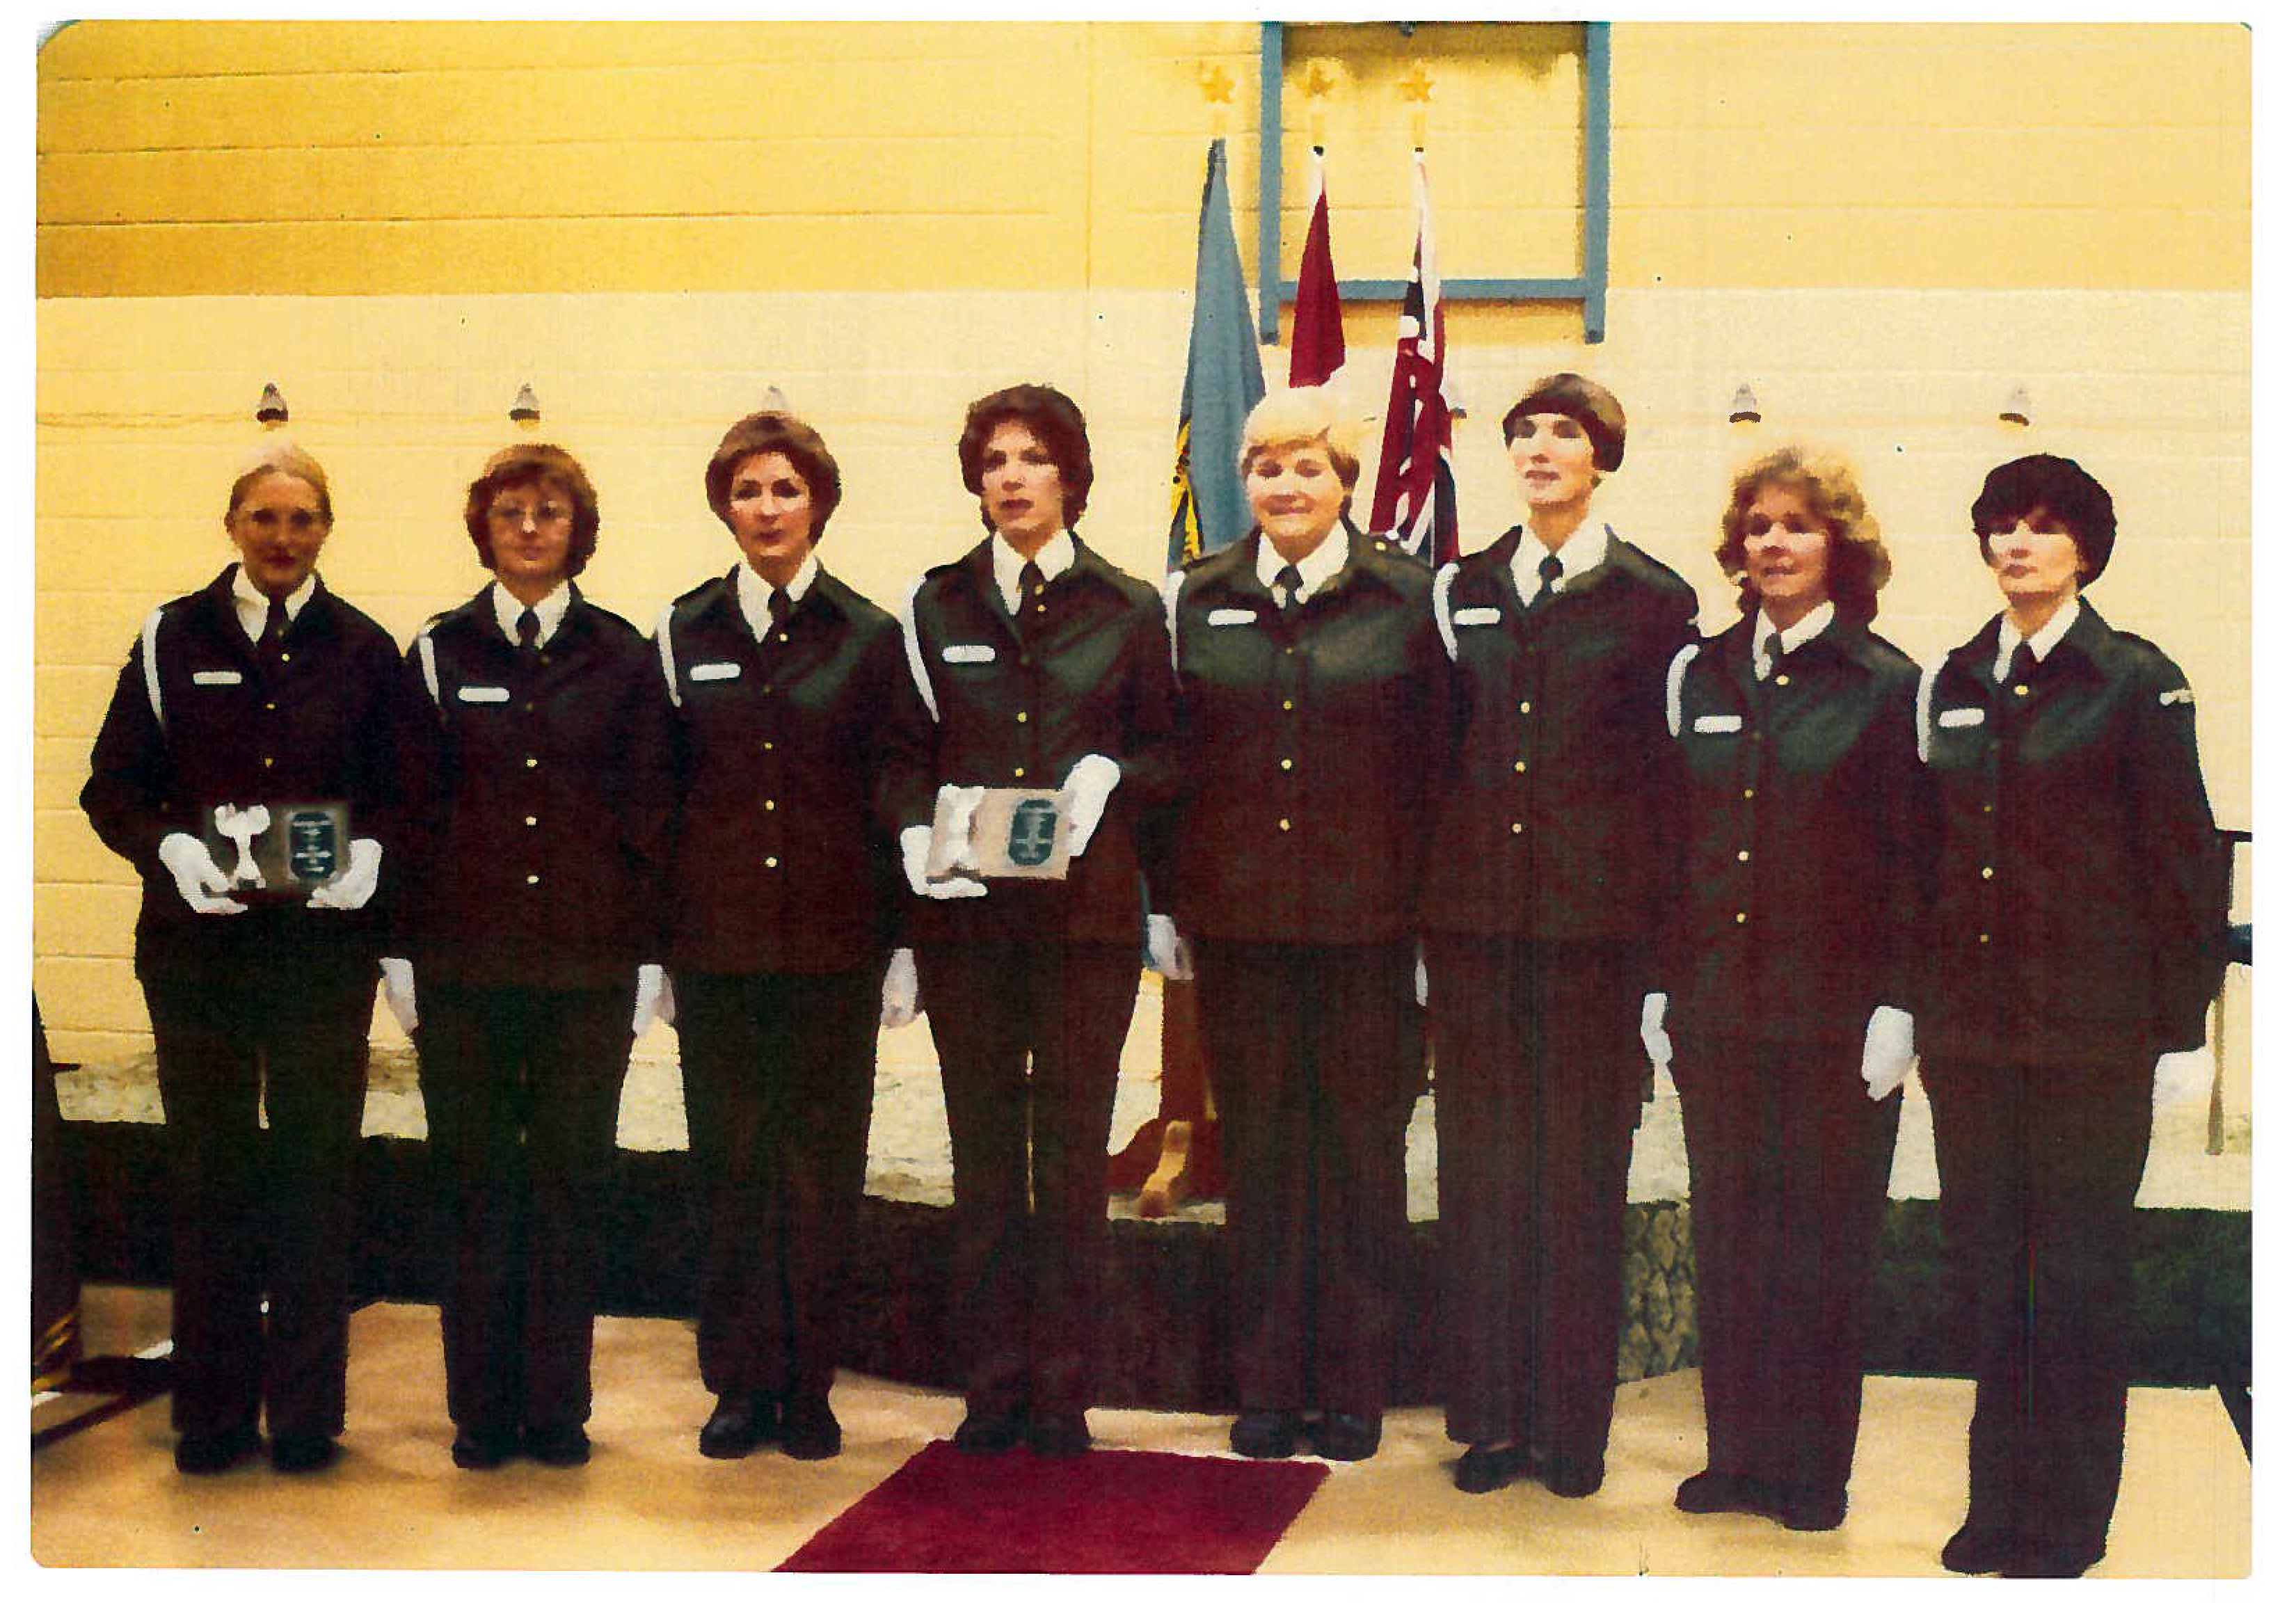 A photo of the first female Correctional Officers in Ontario